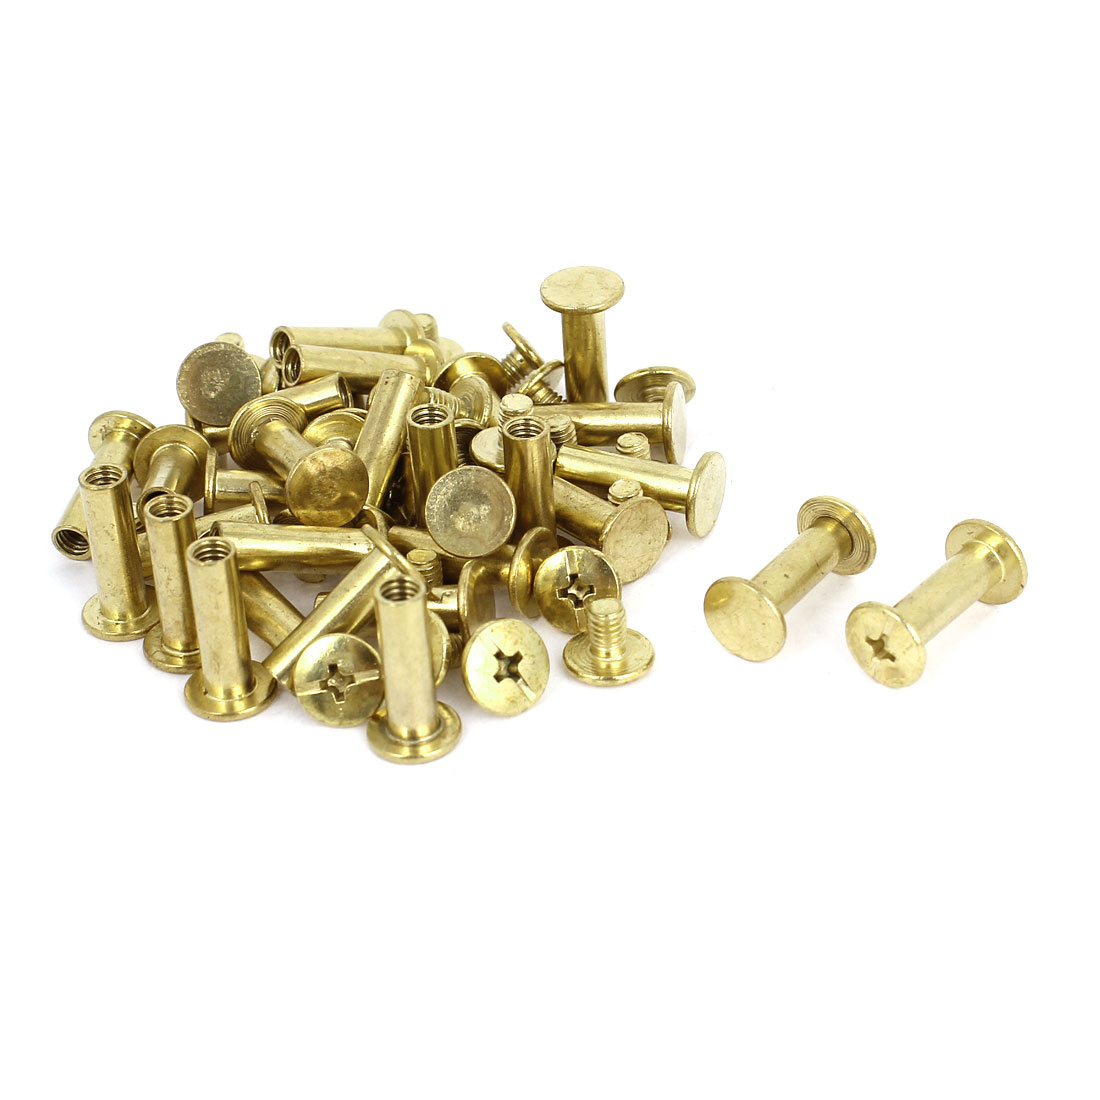 Brass Plated 5x15mm Binding Chicago Screw Post 30pcs for Leather Scrapbook